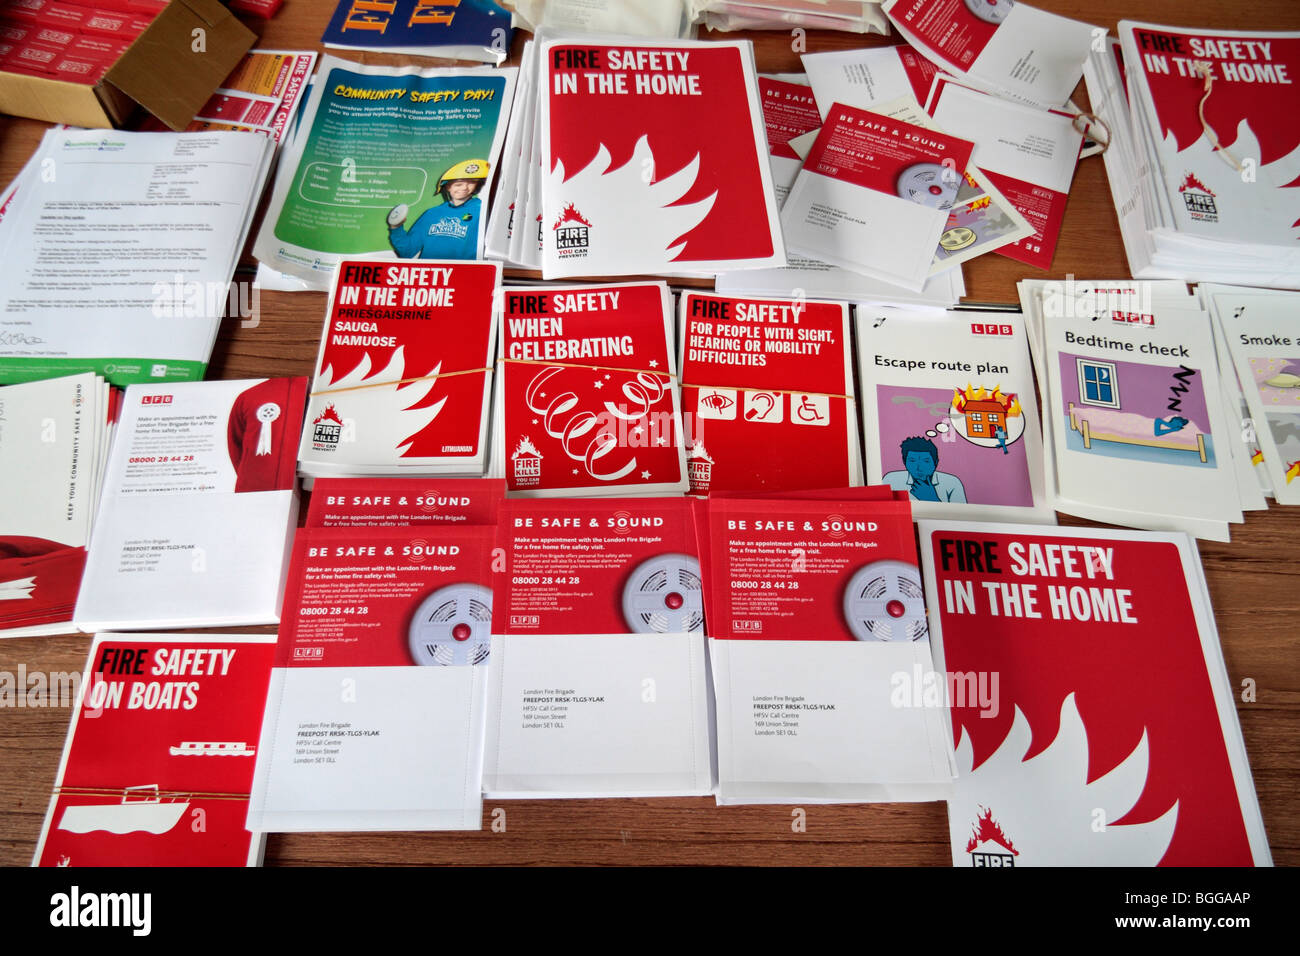 A table of Fire Safety leaflets on display at a London Fire Brigade fire safety awareness day, London UK. Dec 2009 - Stock Image